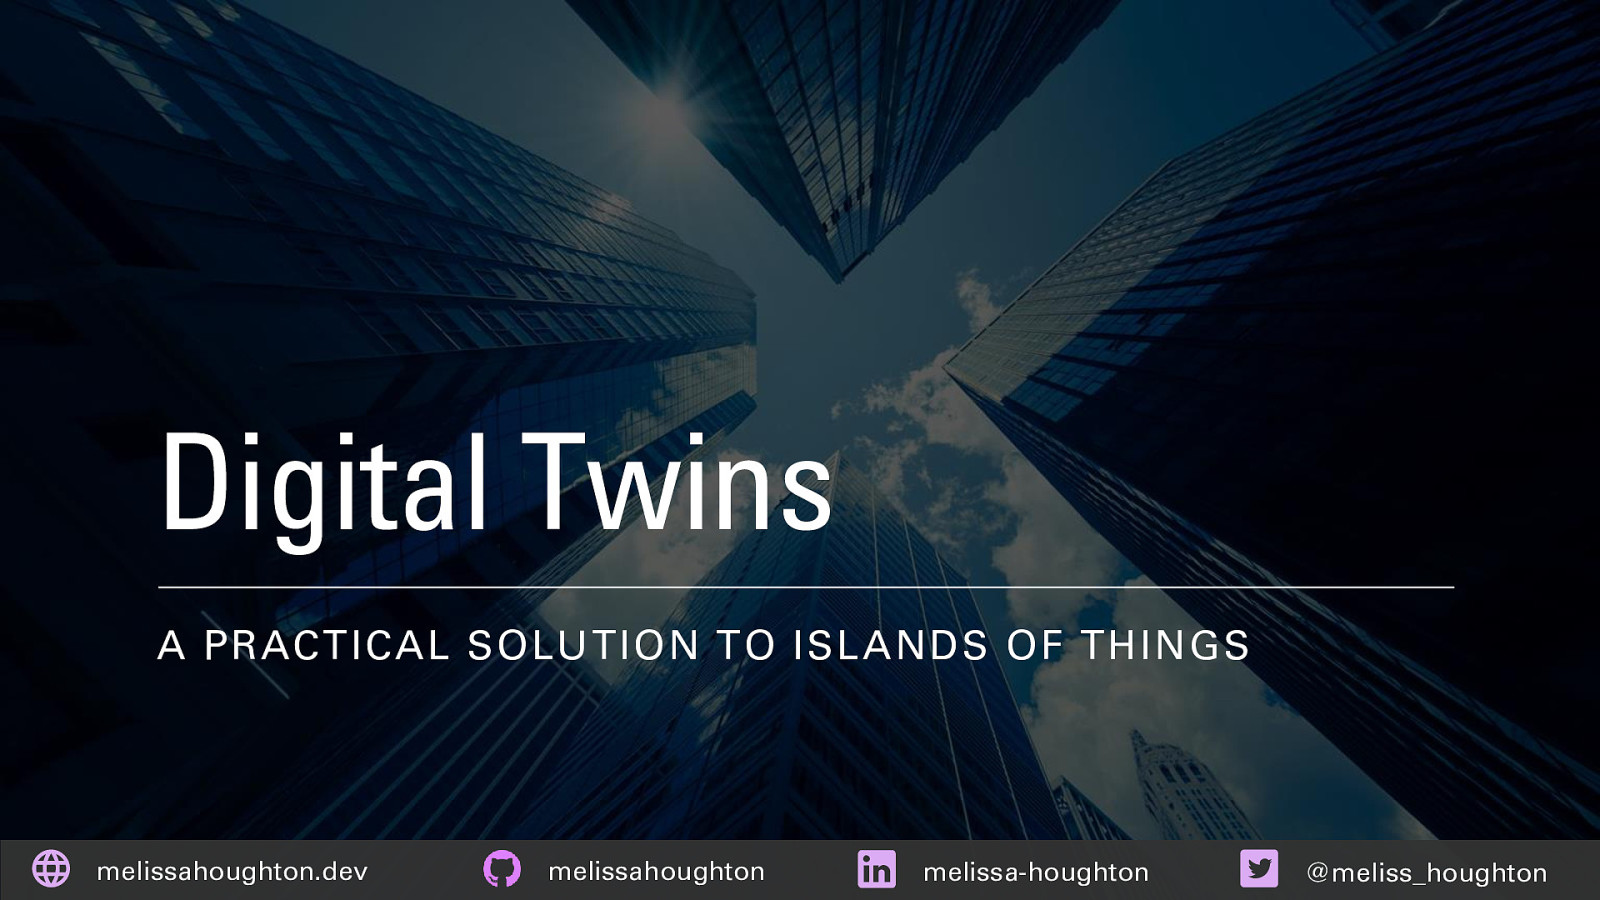 Digital Twins: A practical solution to islands of things